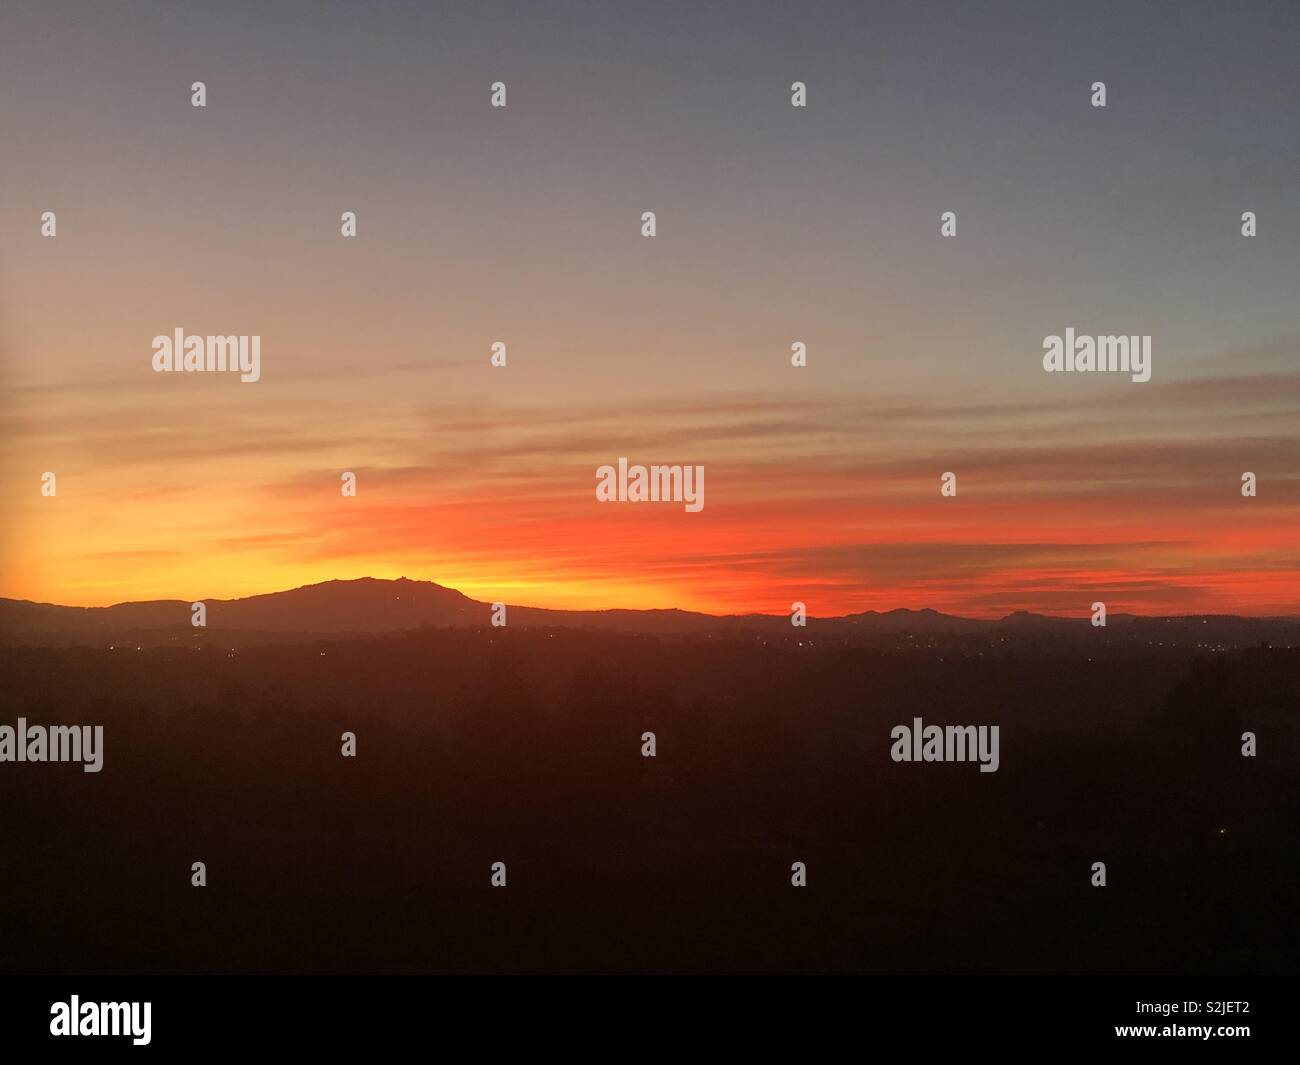 The Sky is burning 🔥 - Stock Image